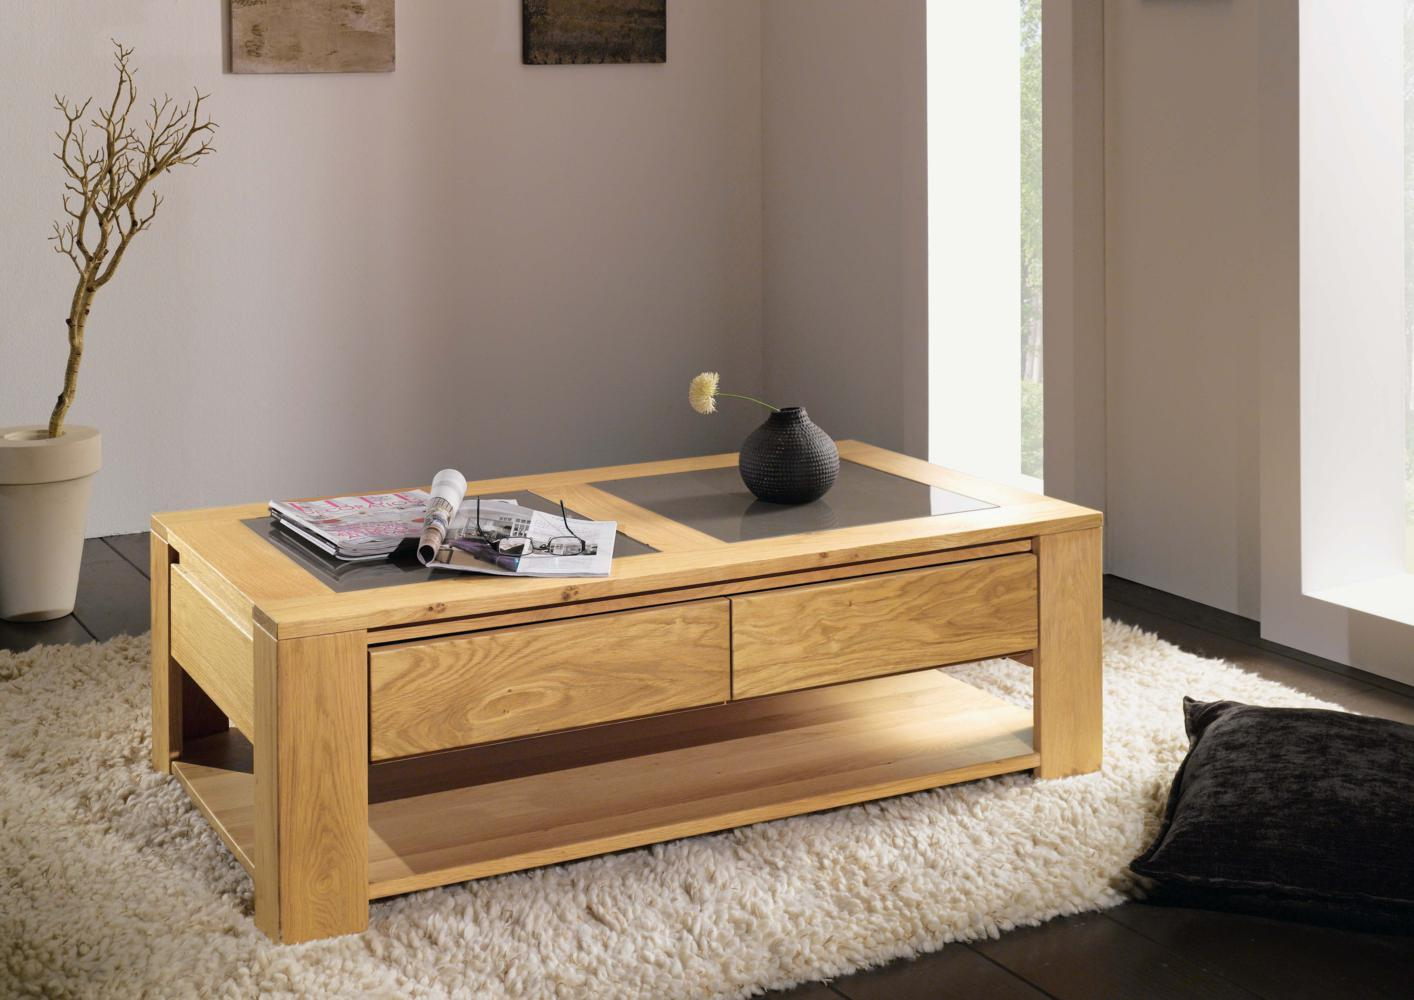 Table basse chene massif - Table basse en chene ...